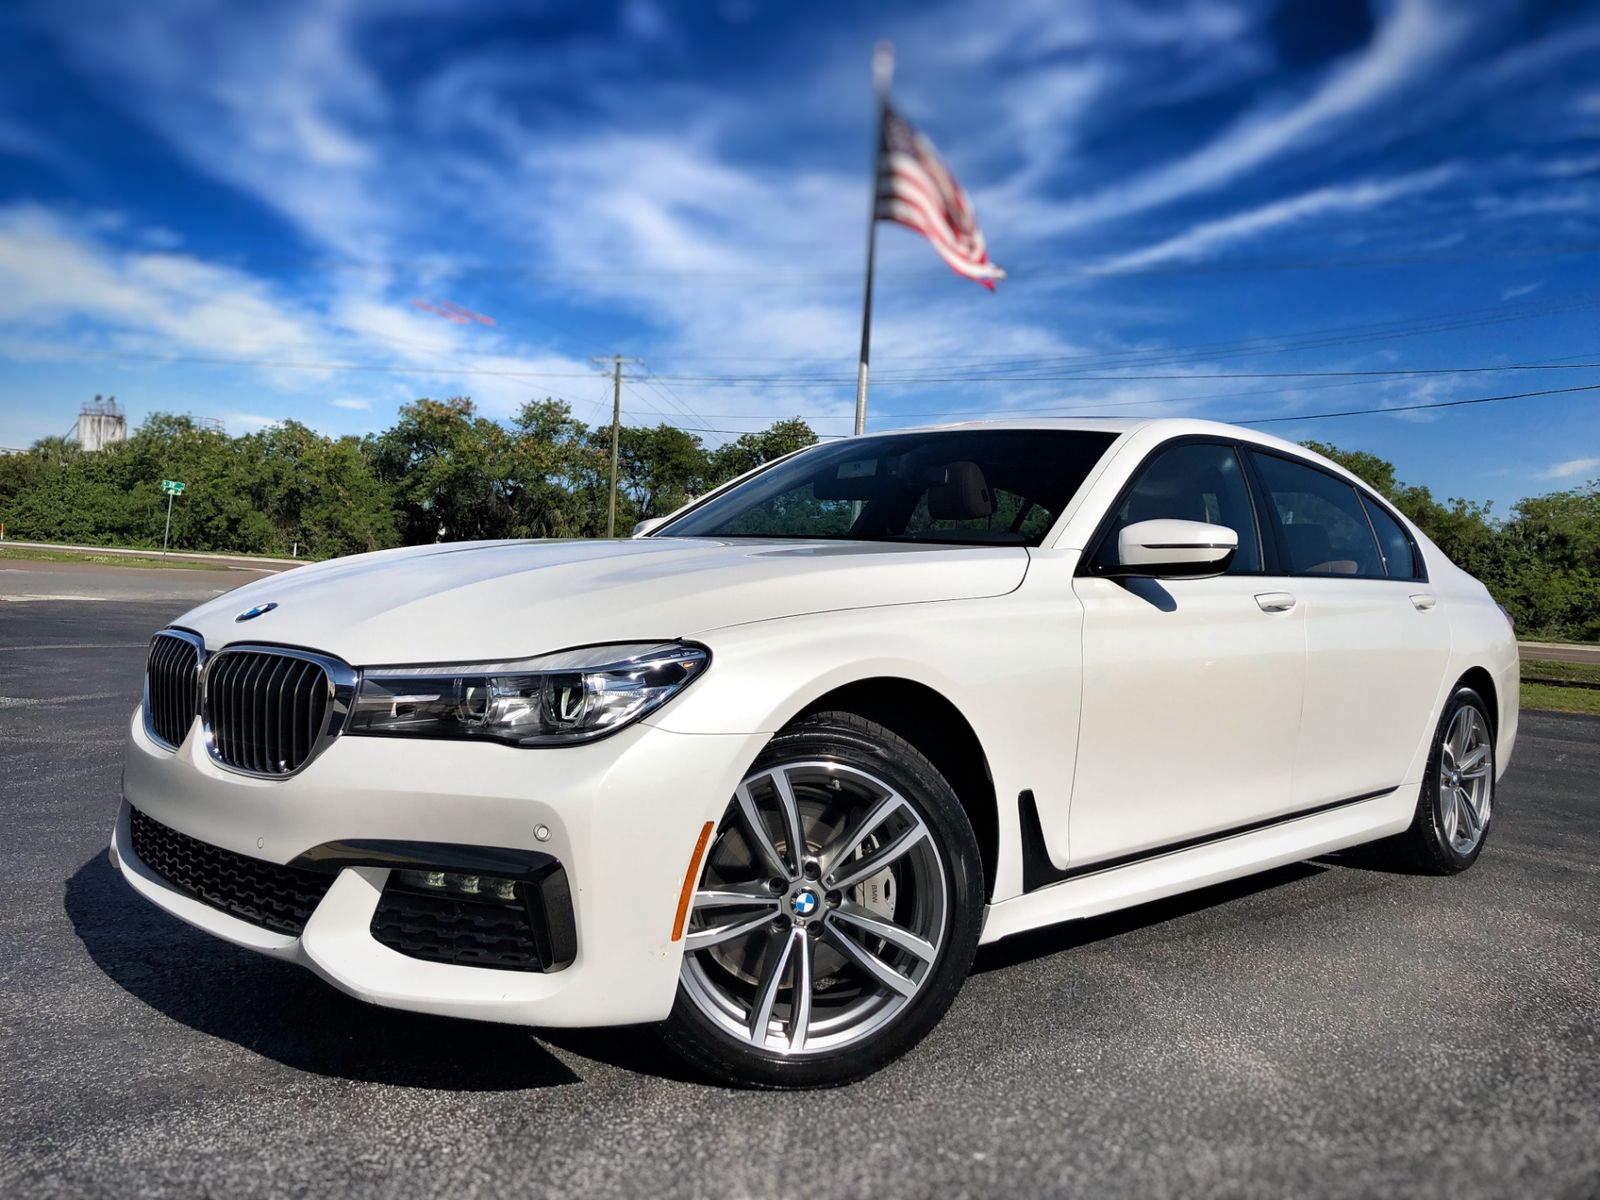 medium resolution of  2018 bmw 740i m sport 1 owner pano roof carfax cert 88k florida bayshore automotive